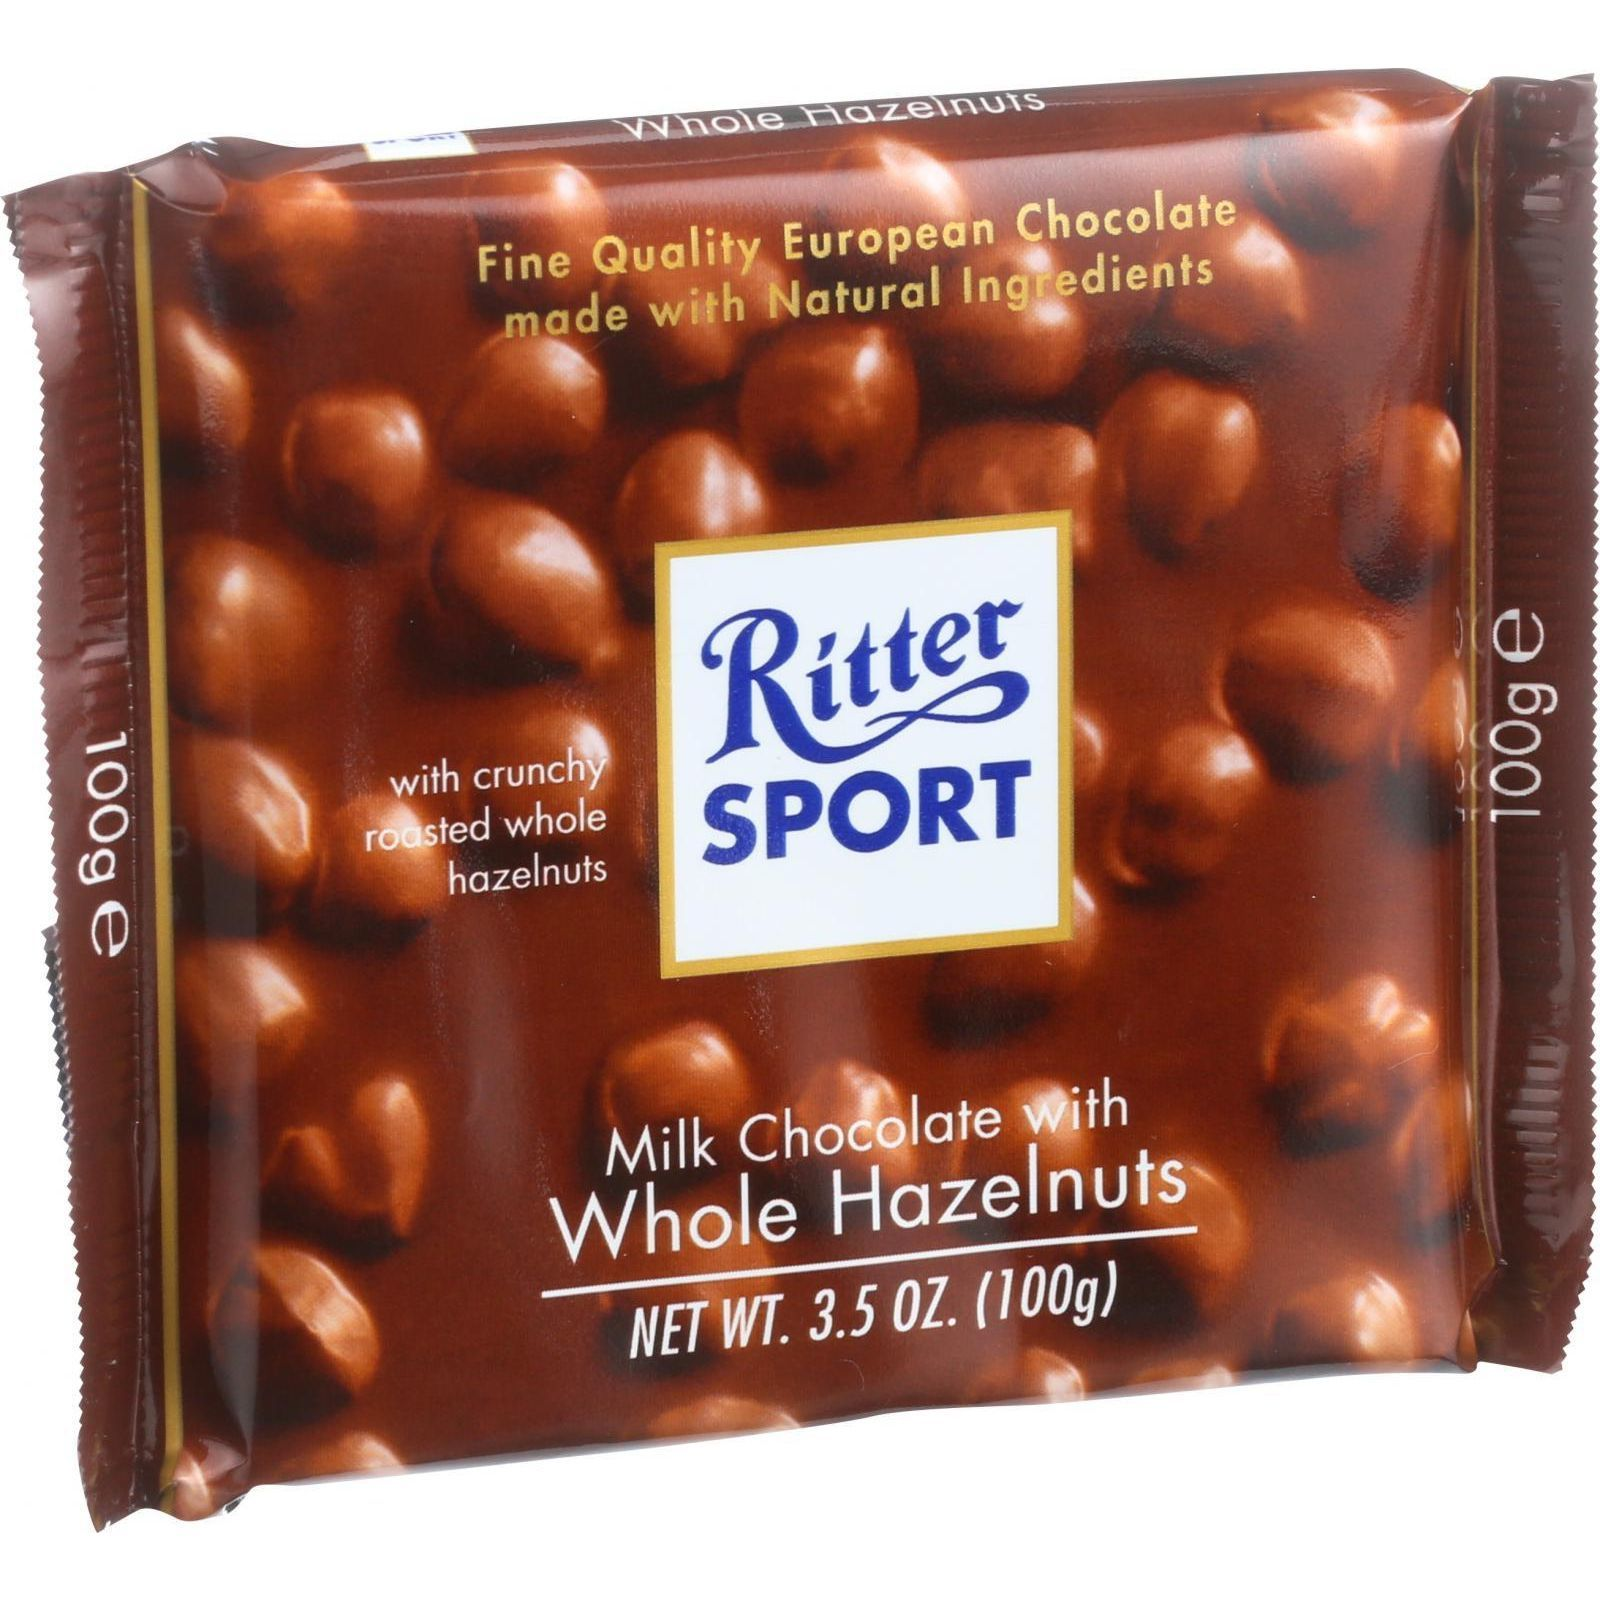 Ritter Sport Chocolate Bar - Milk Chocolate - Whole Hazelnuts - 3.5 oz Bars - Case of 10